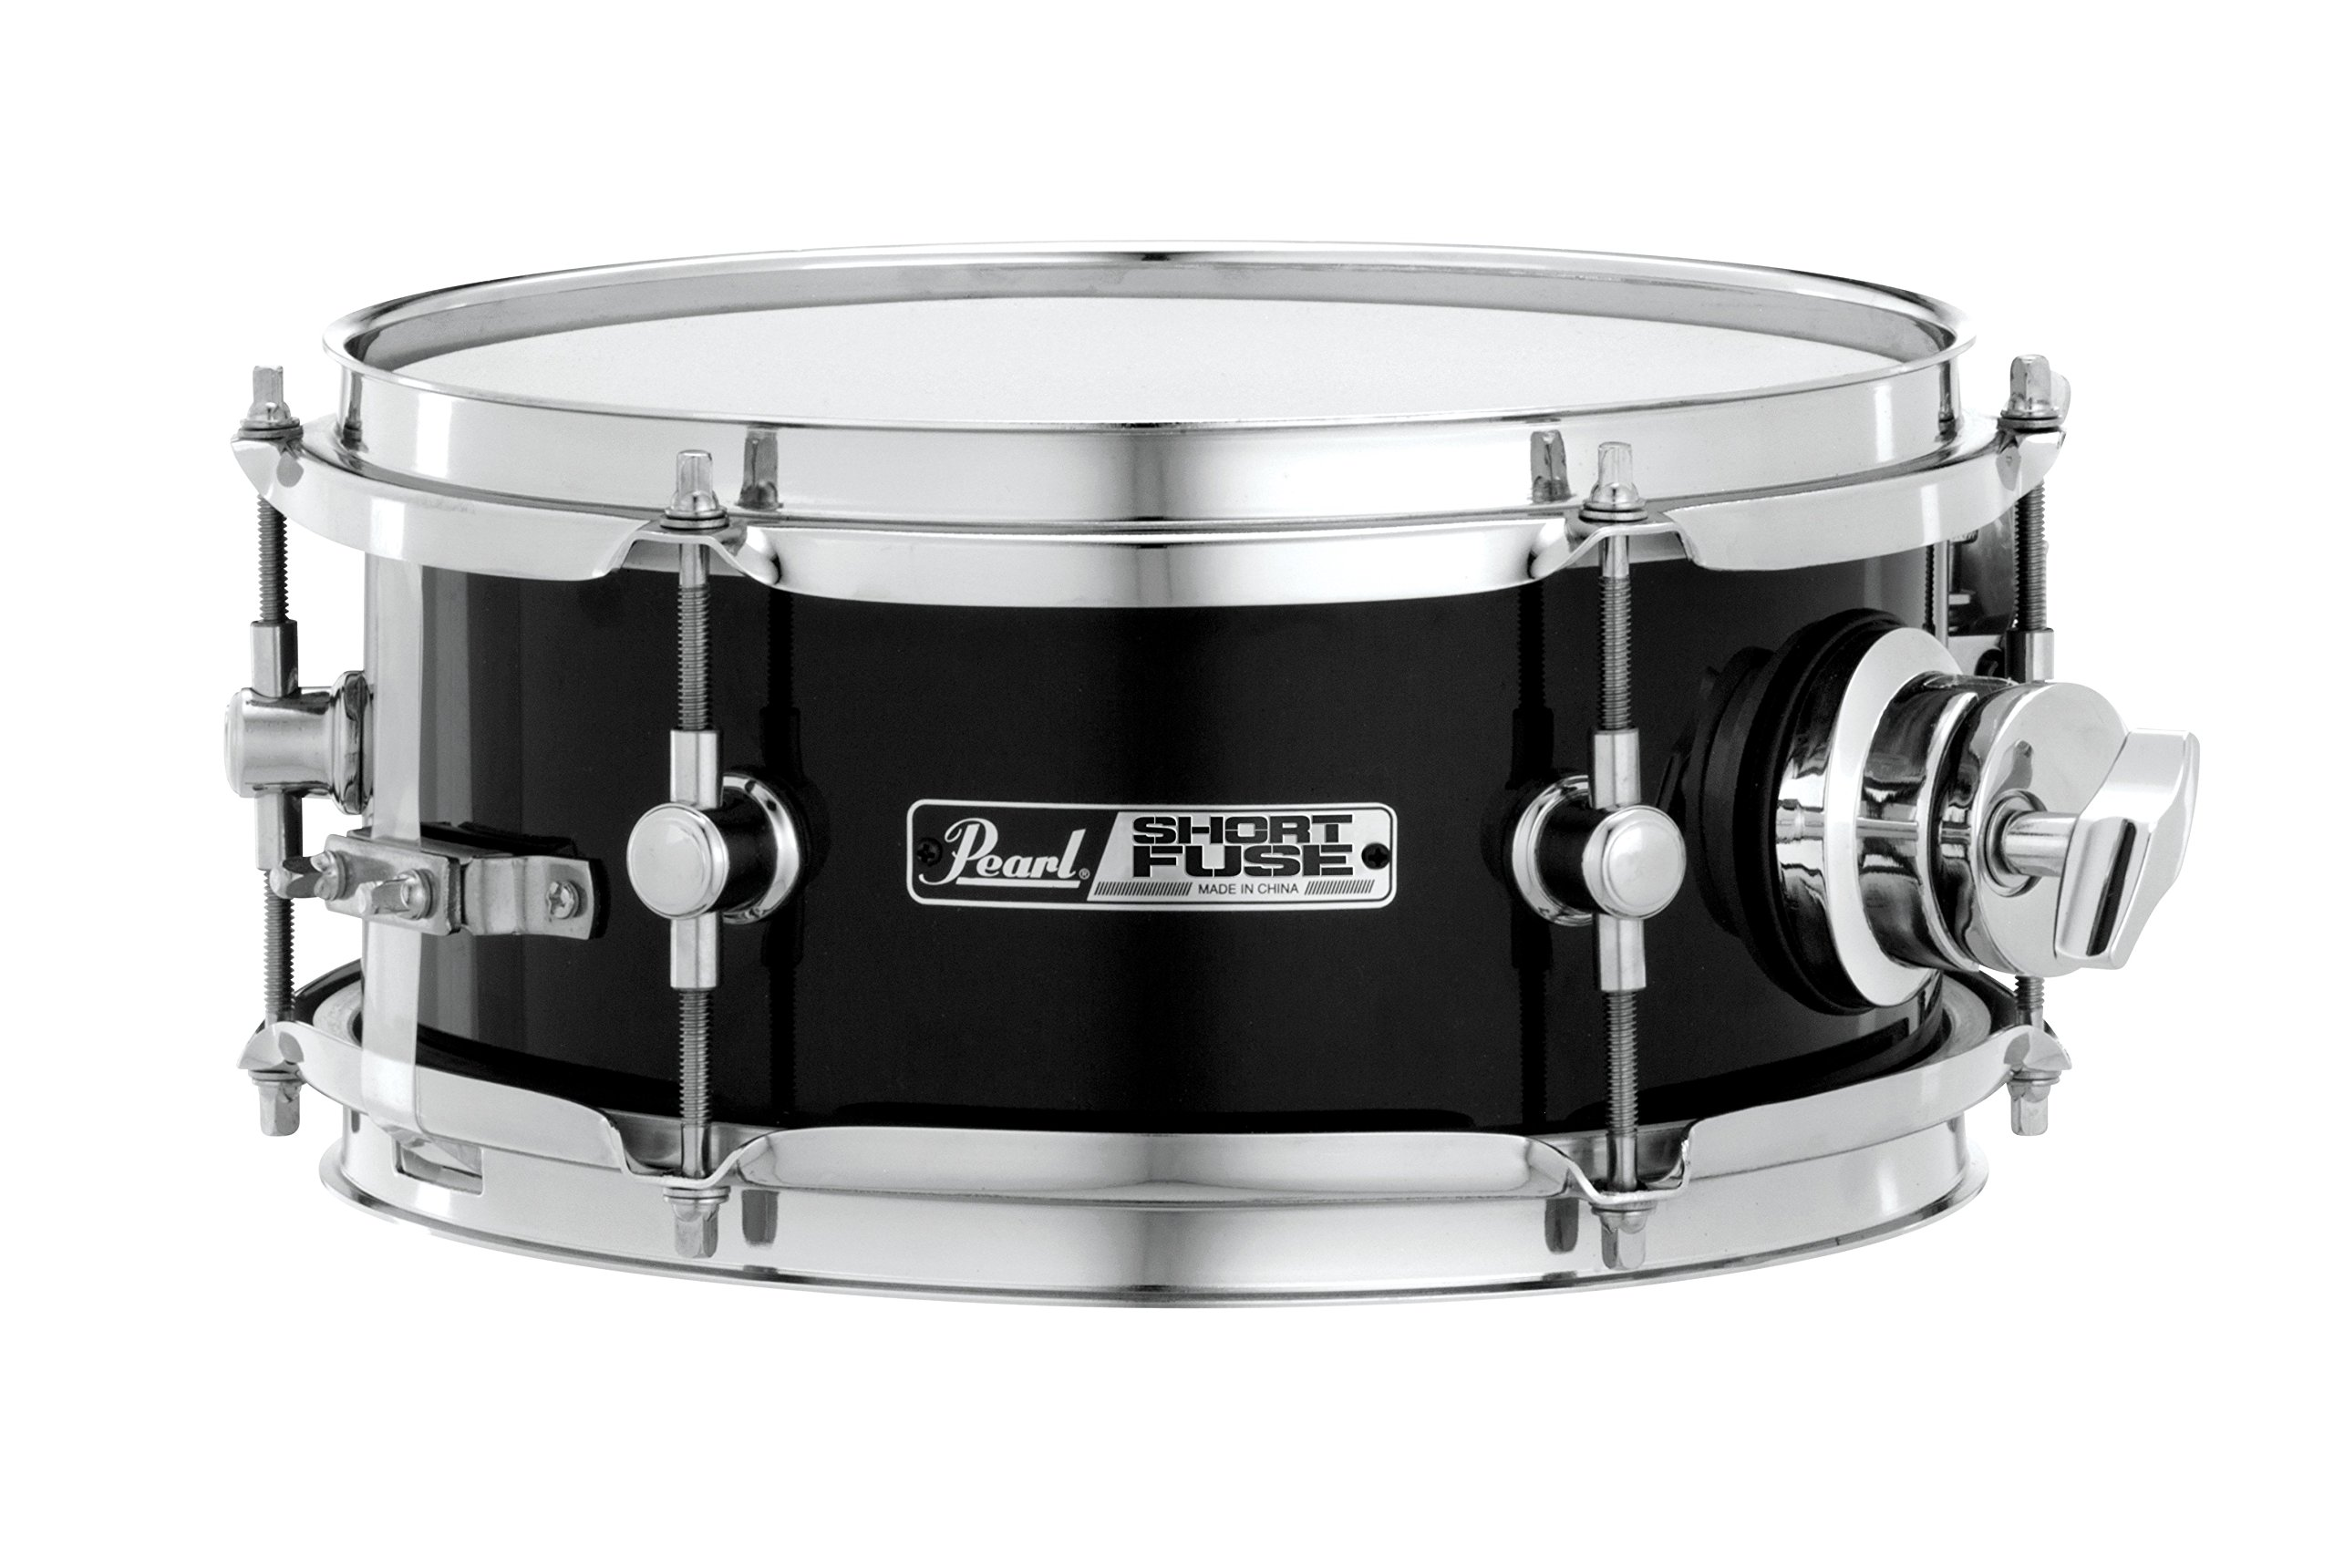 Pearl Snare Drum, 10-inch (SFS10/C31) by Pearl